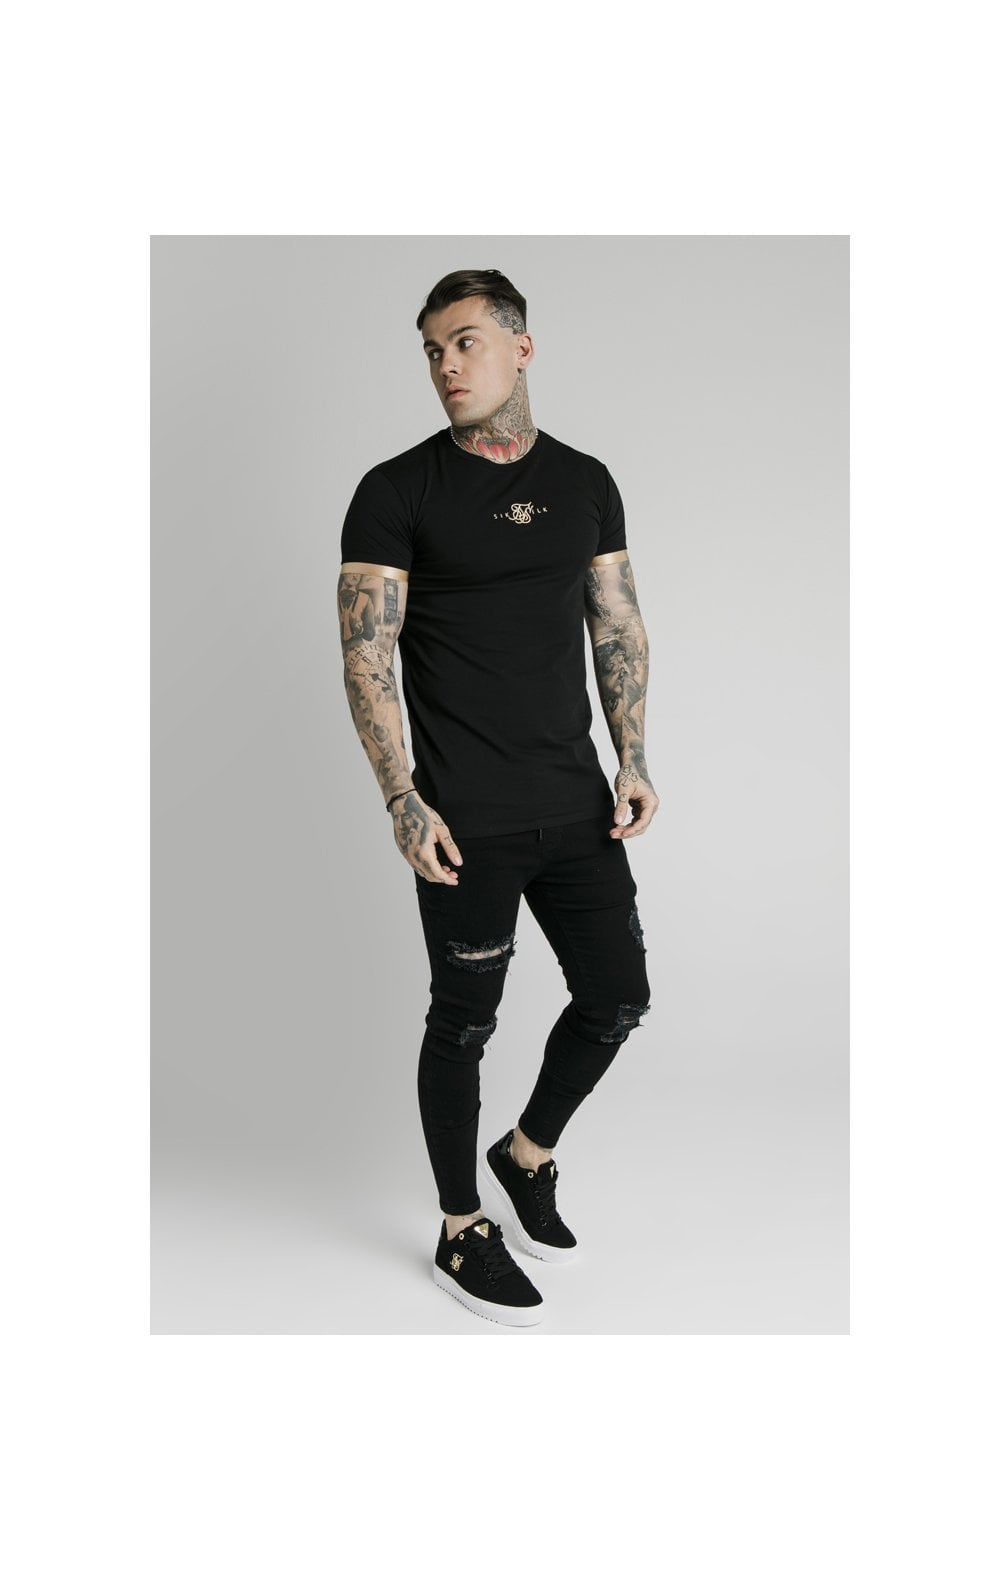 SikSilk S/S Inset Cuff Gym Tee – Black & Gold (4)